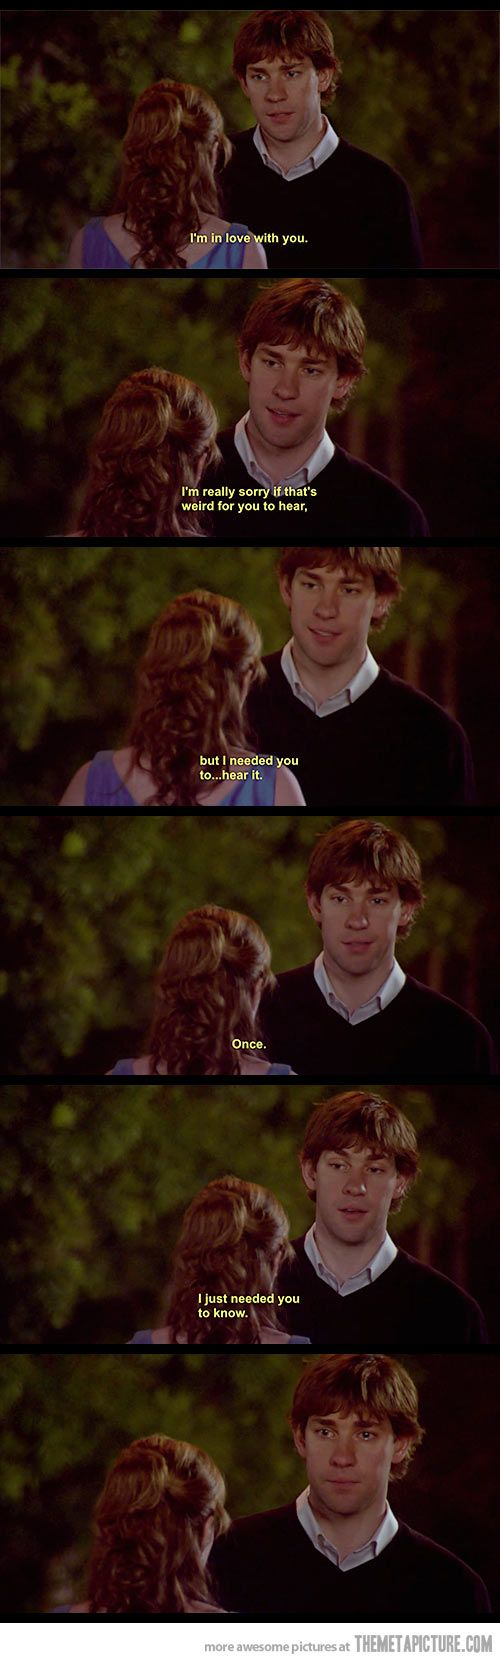 This scene is a punch in the feels…  Jim FINALLY says what we've all been waiting for...  then Pam breaks all of our hearts!  :(  But we still love her (so does Jim)  She didn't mean to do it...